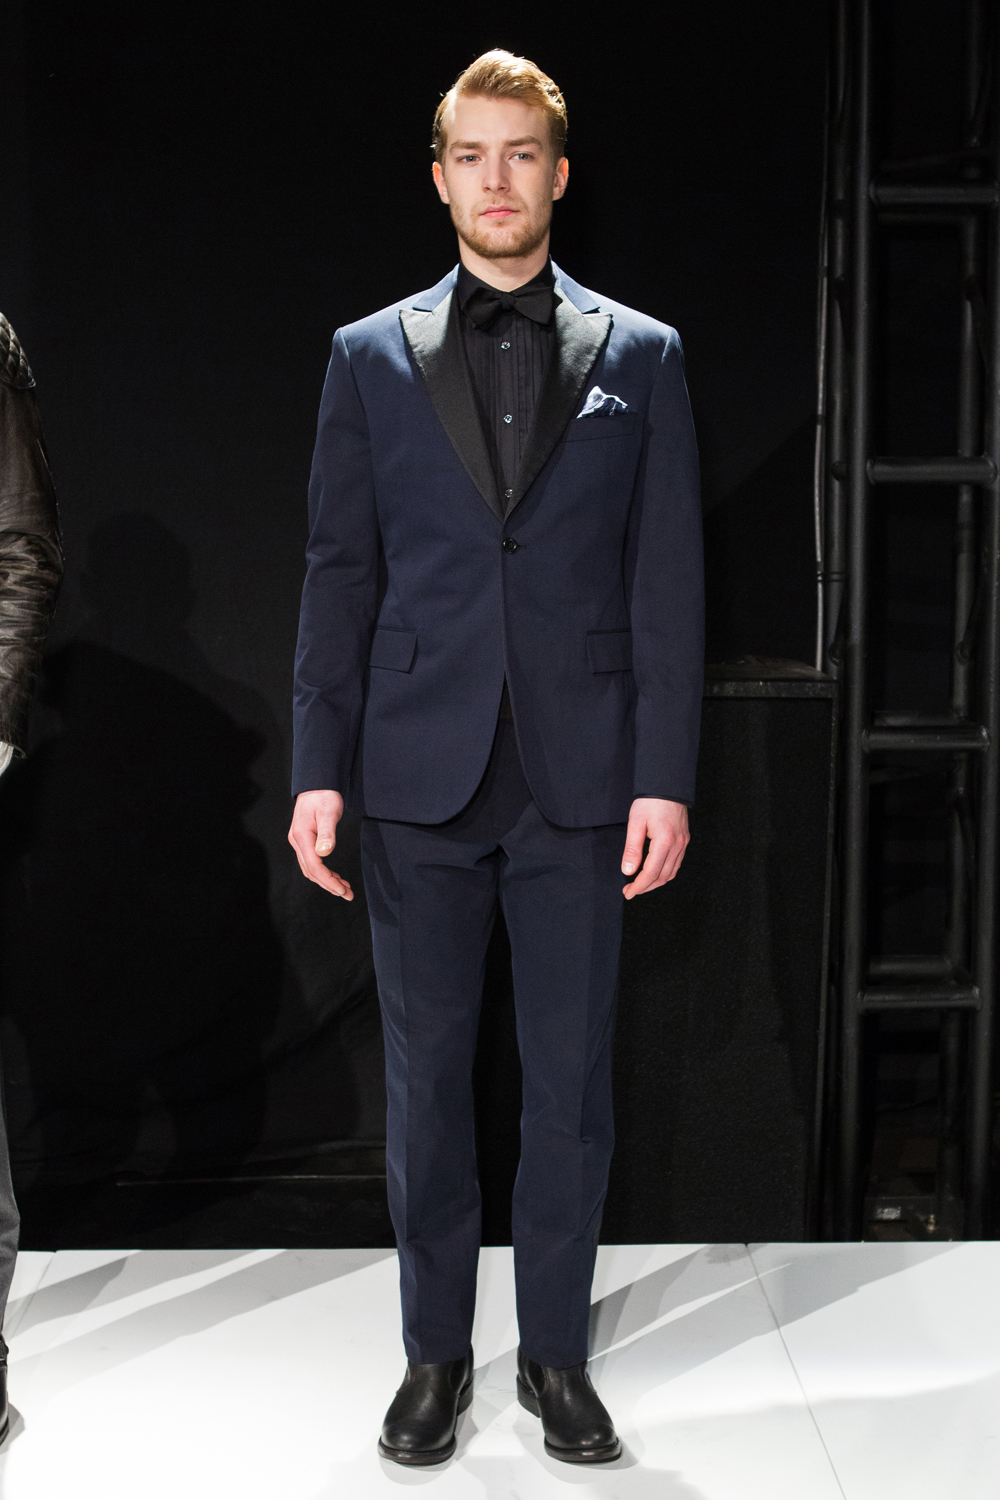 Todd Snyder Fall/Winter 2013 | New York Fashion Week image